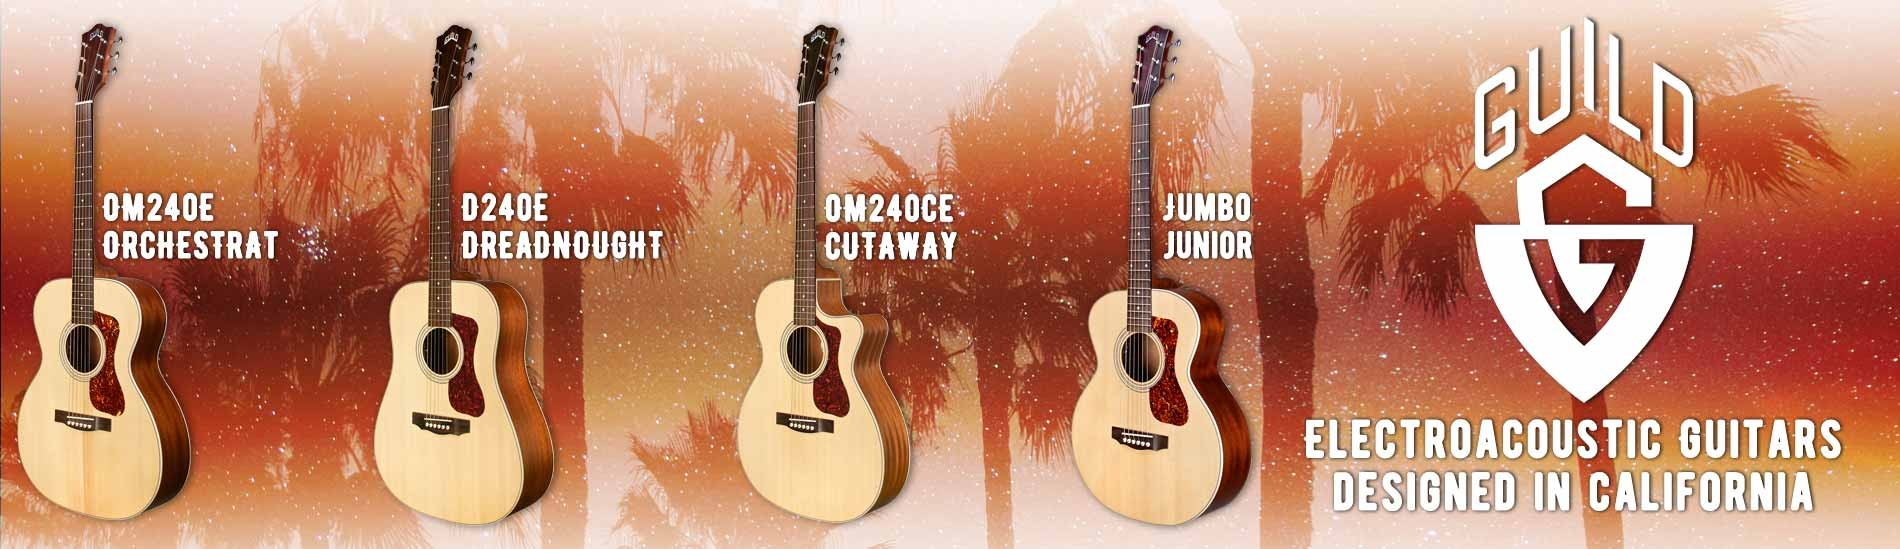 Guild Electroacoustic Guitars - Designed in California!